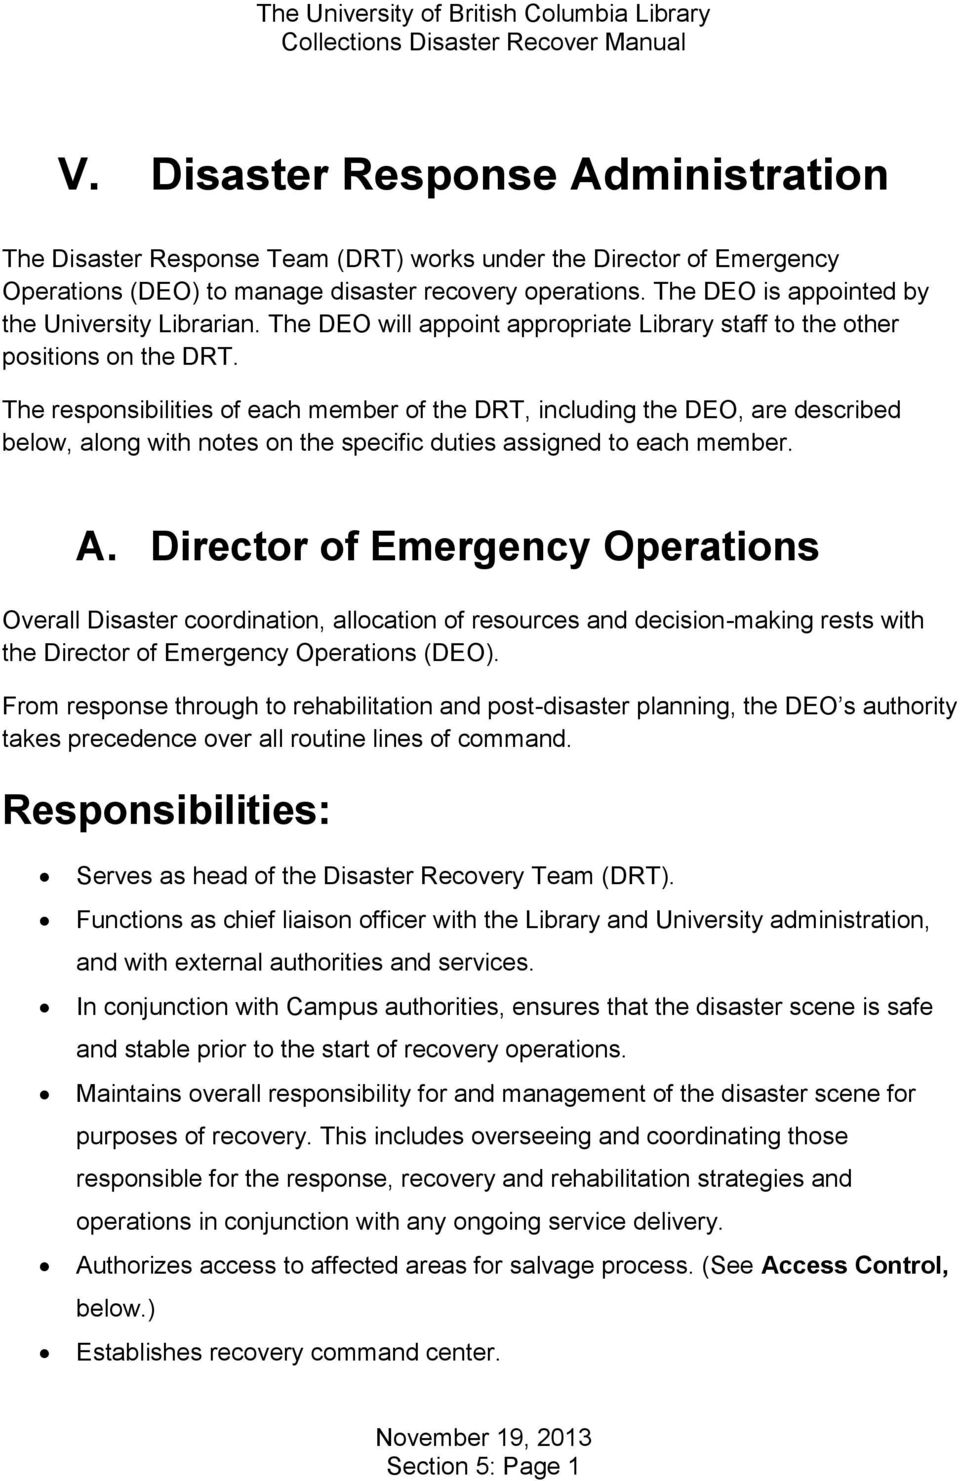 The responsibilities of each member of the DRT, including the DEO, are described below, along with notes on the specific duties assigned to each member. A.